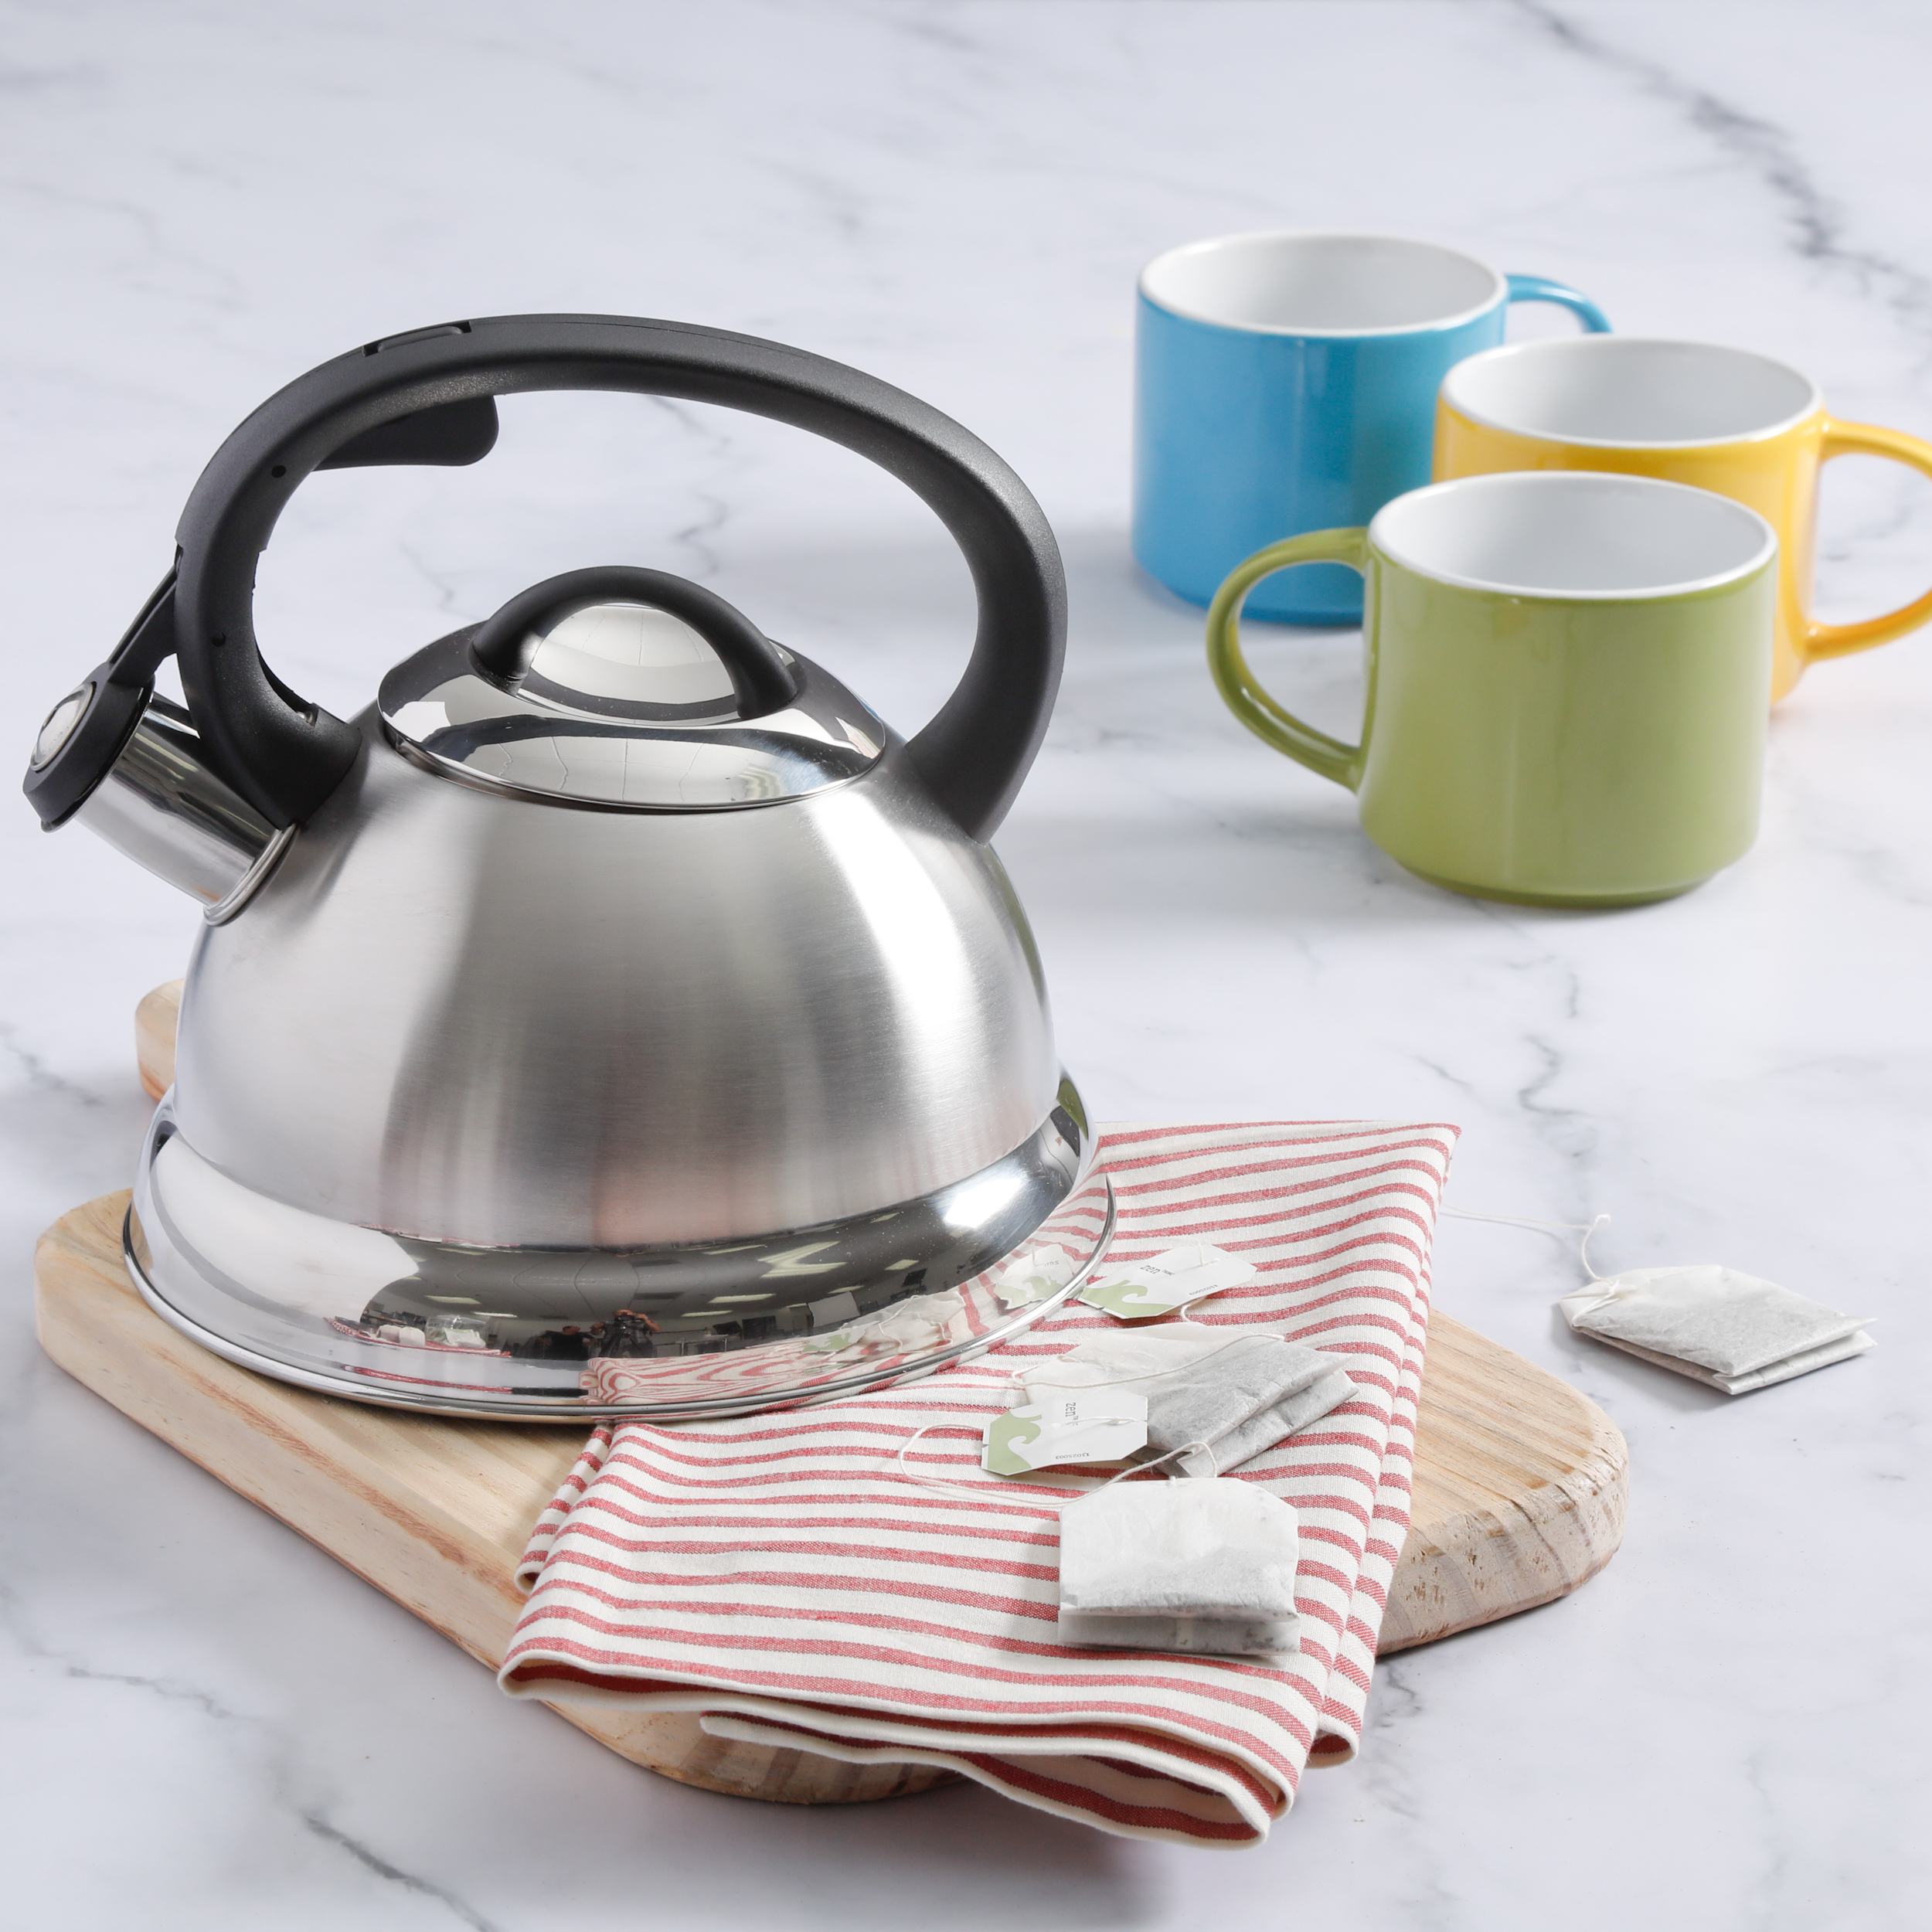 Mr. Coffee Flintshire 1.75 Qt Stainless Steel Whistling Tea Kettle